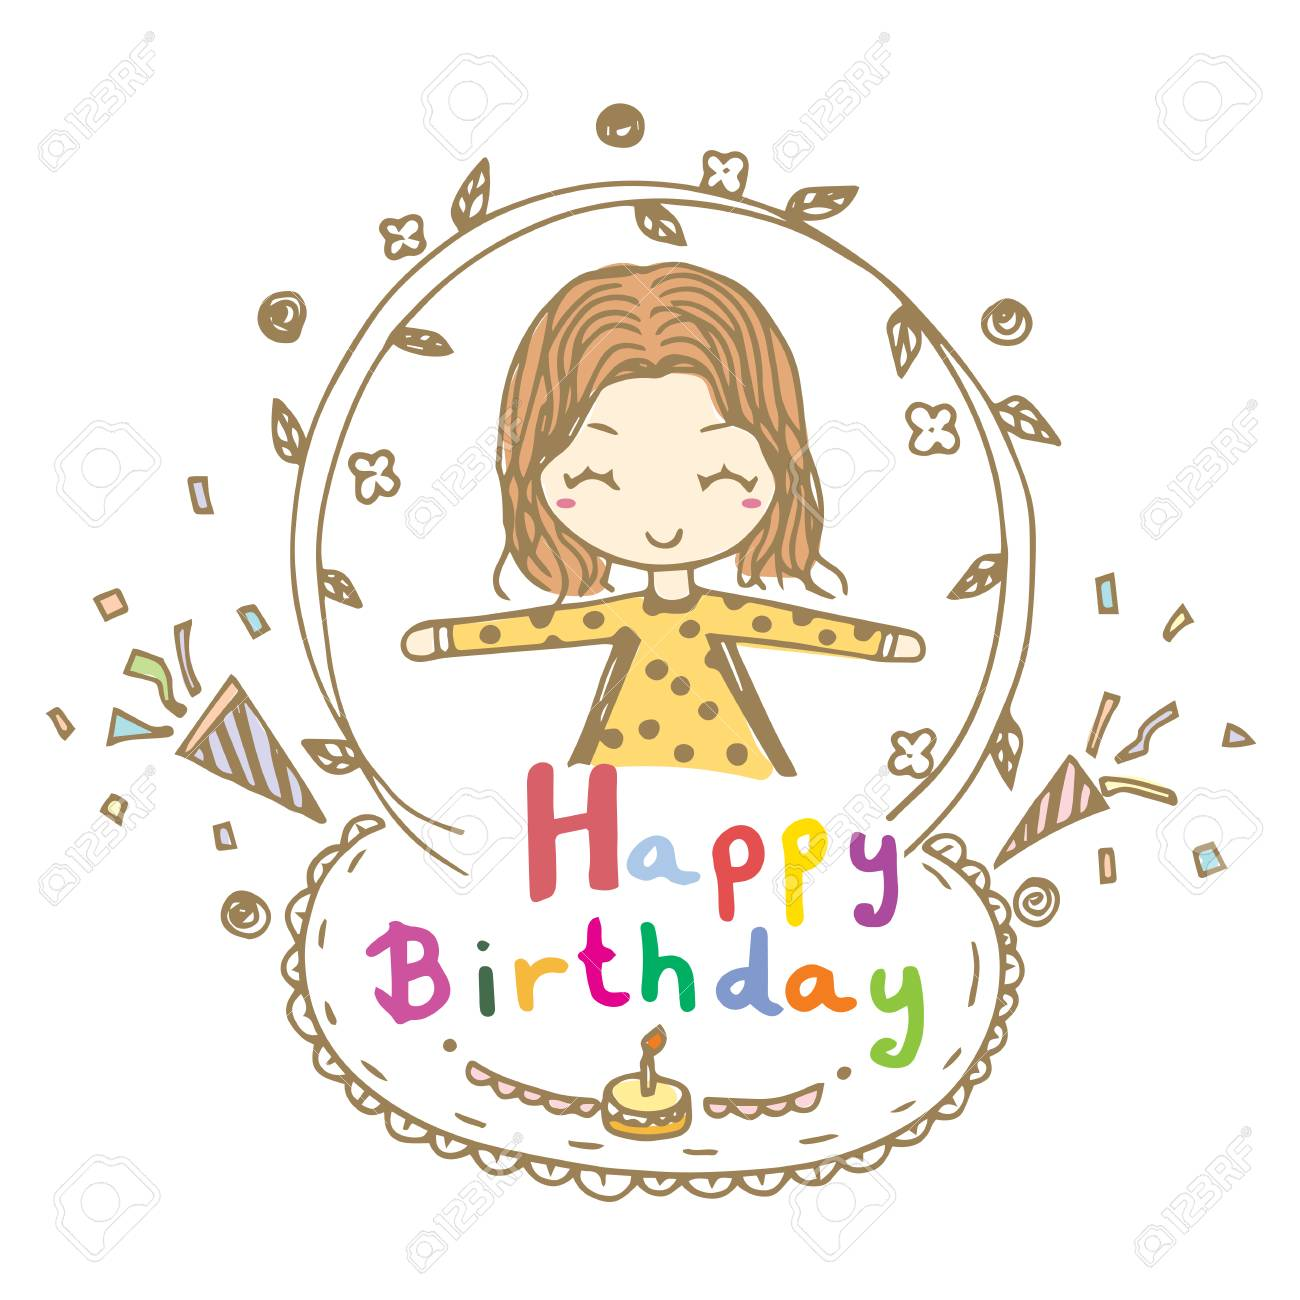 Doodle Drawing Vector Of Cute Girl Smile And Open Arms With Happy Birthday Word Stock